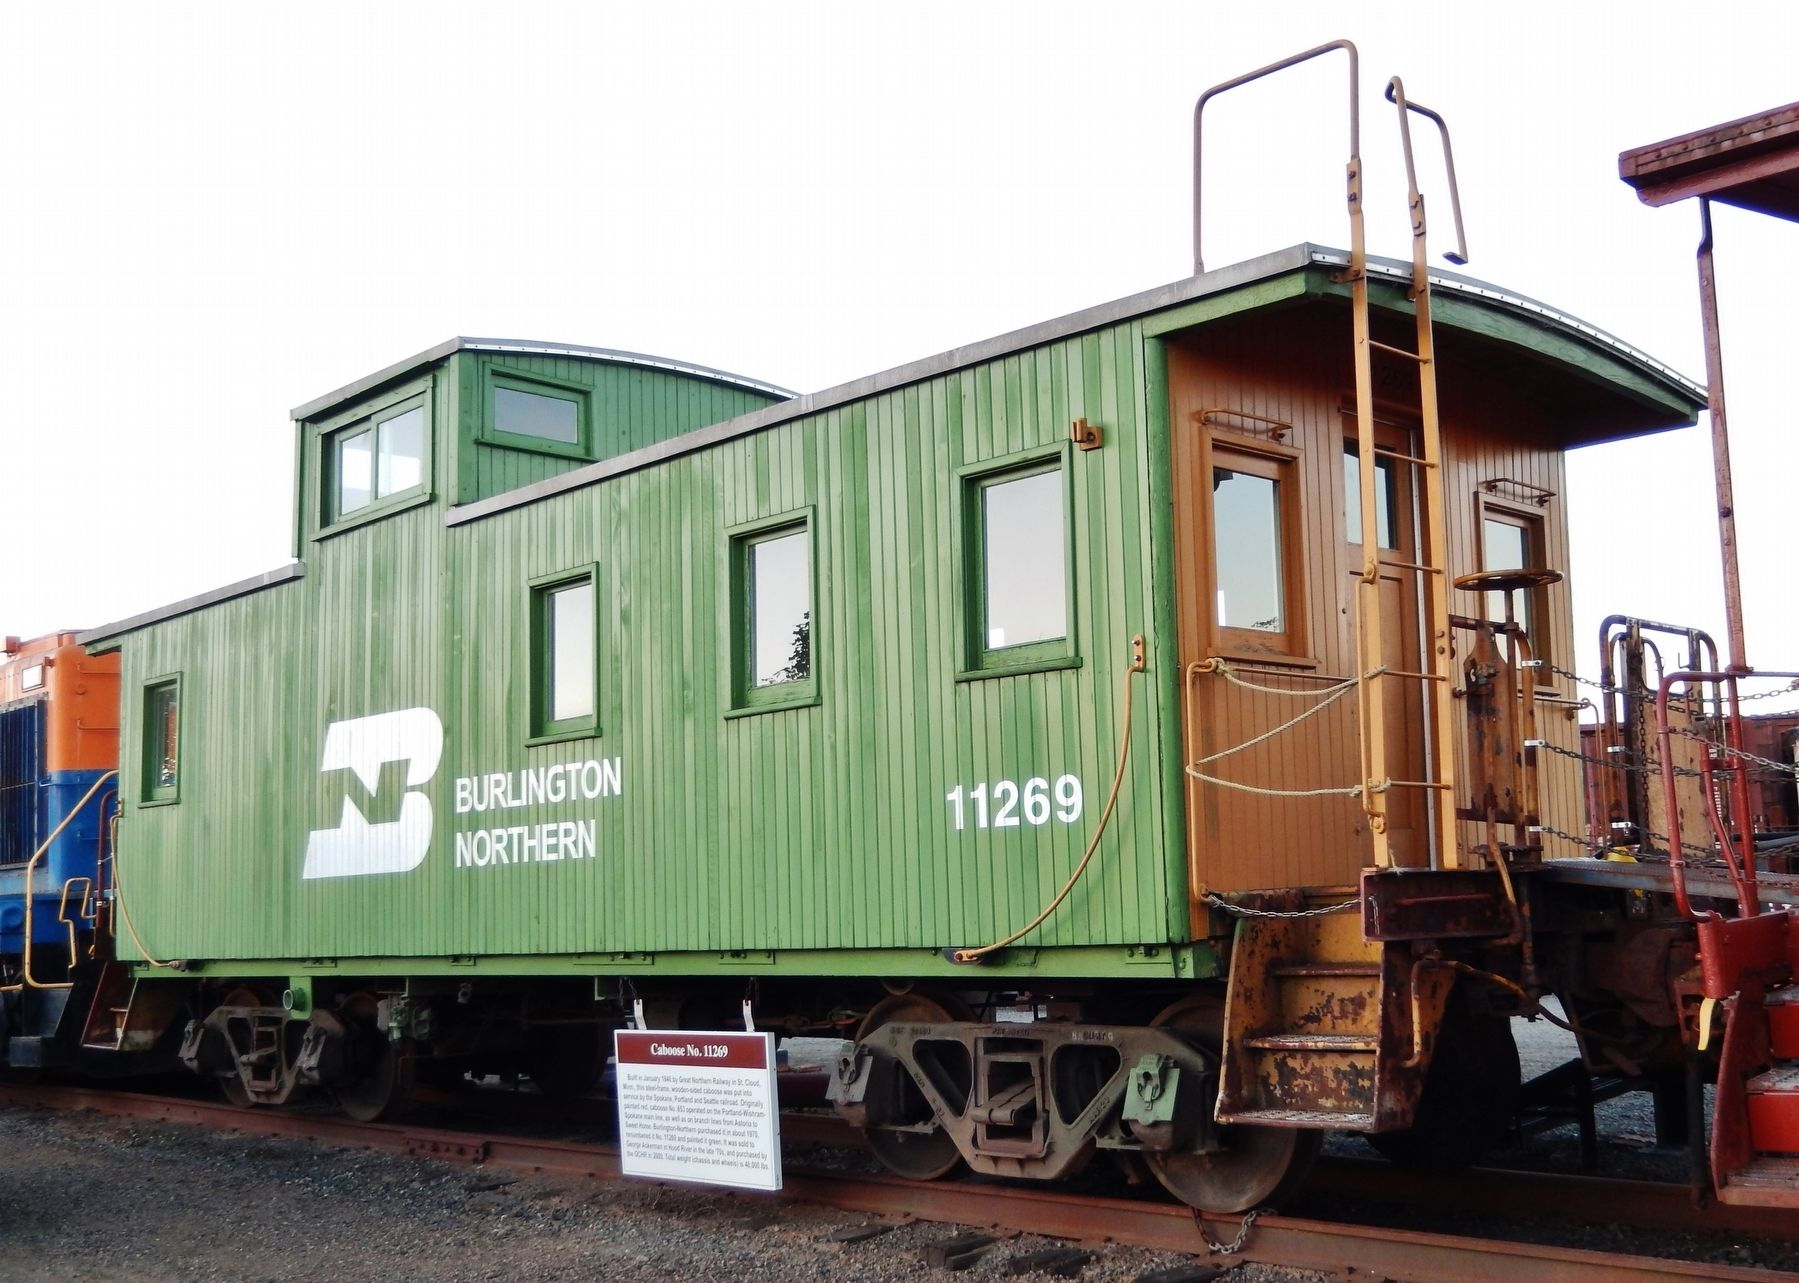 Caboose No. 11269 Marker (<i>wide view showing caboose</i>) image. Click for full size.